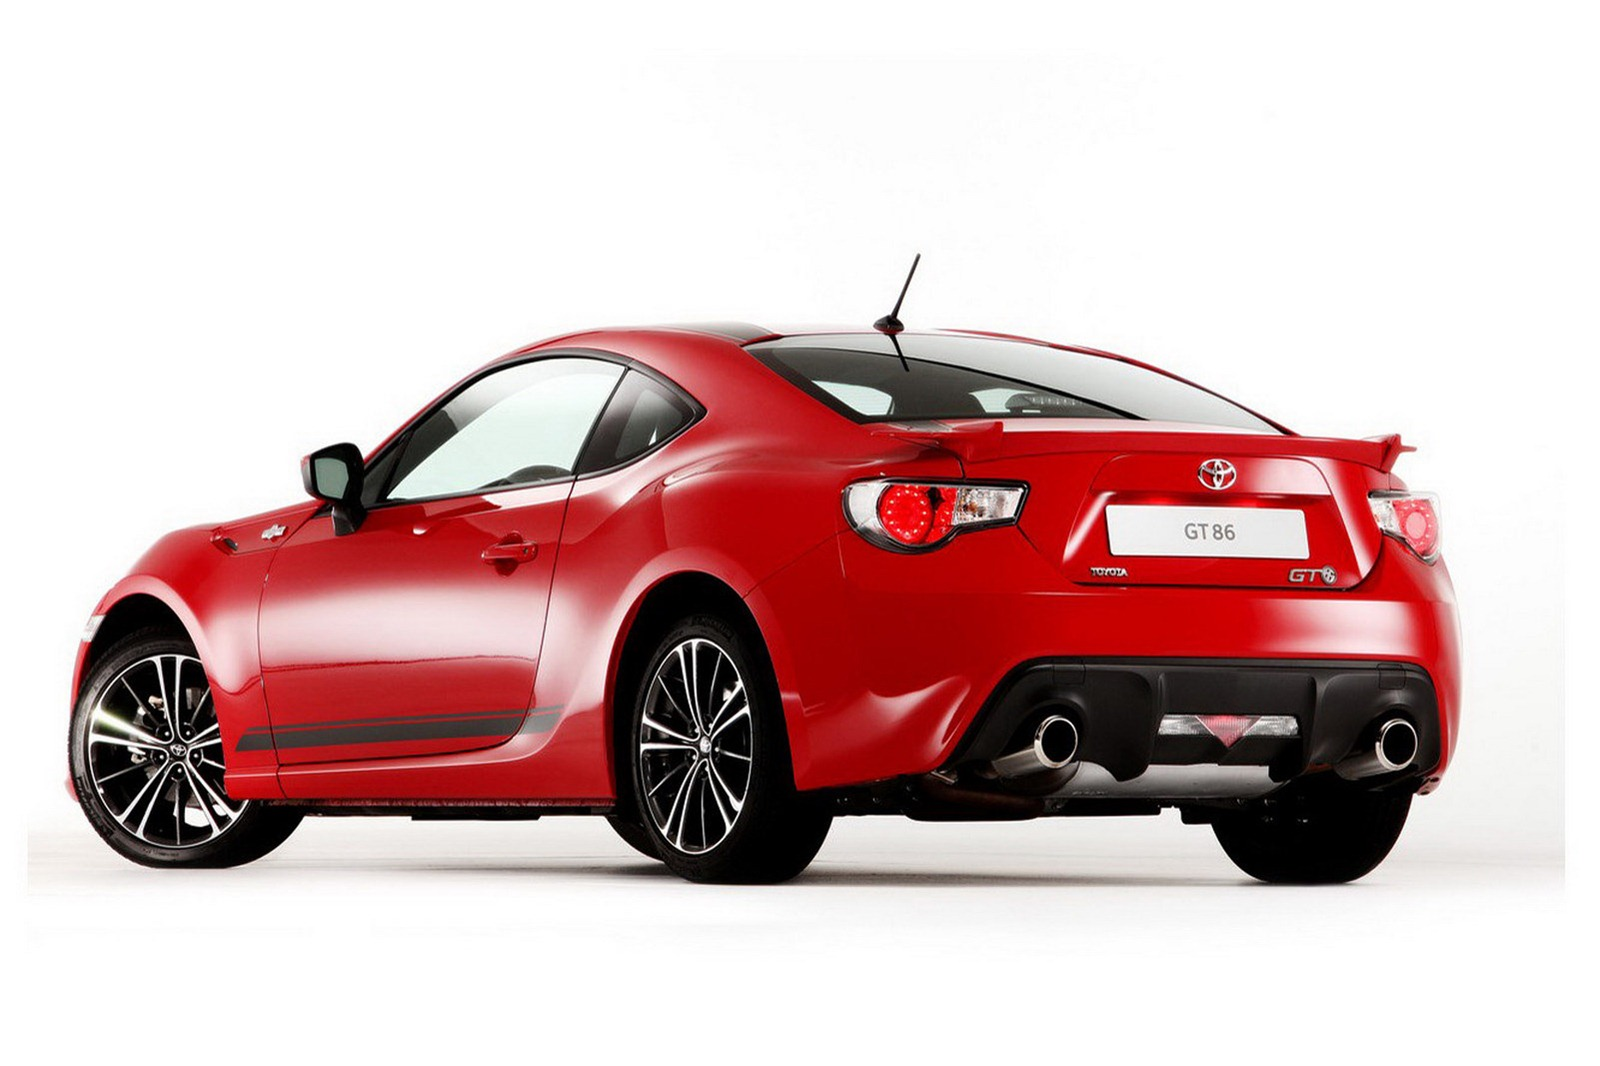 Toyota Gt 86 Accessories Revealed Photo Gallery Free Download Image Of